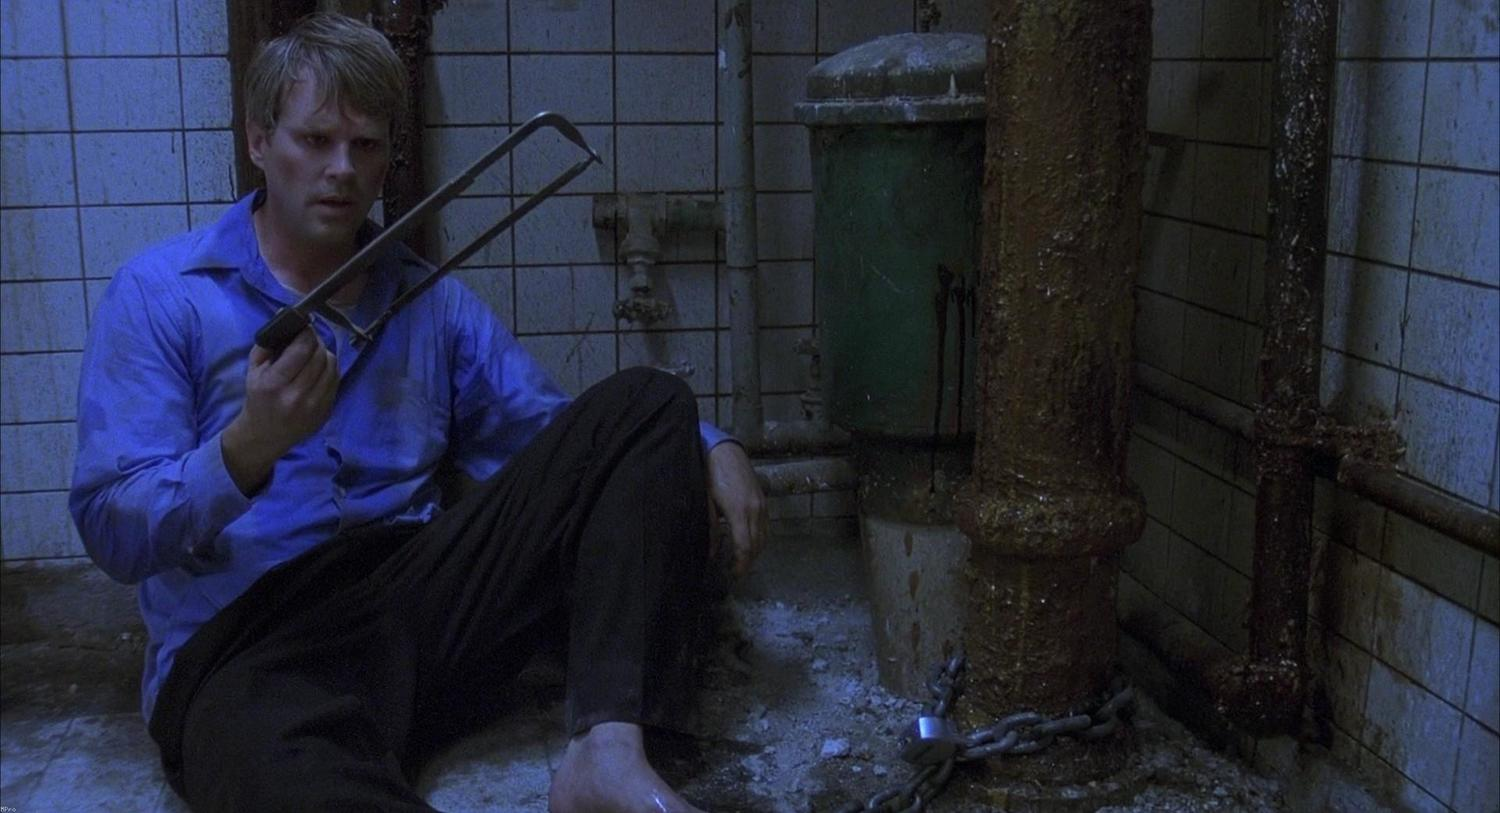 Cary Elwes forced to consider sawing off his foot in Saw (2004)